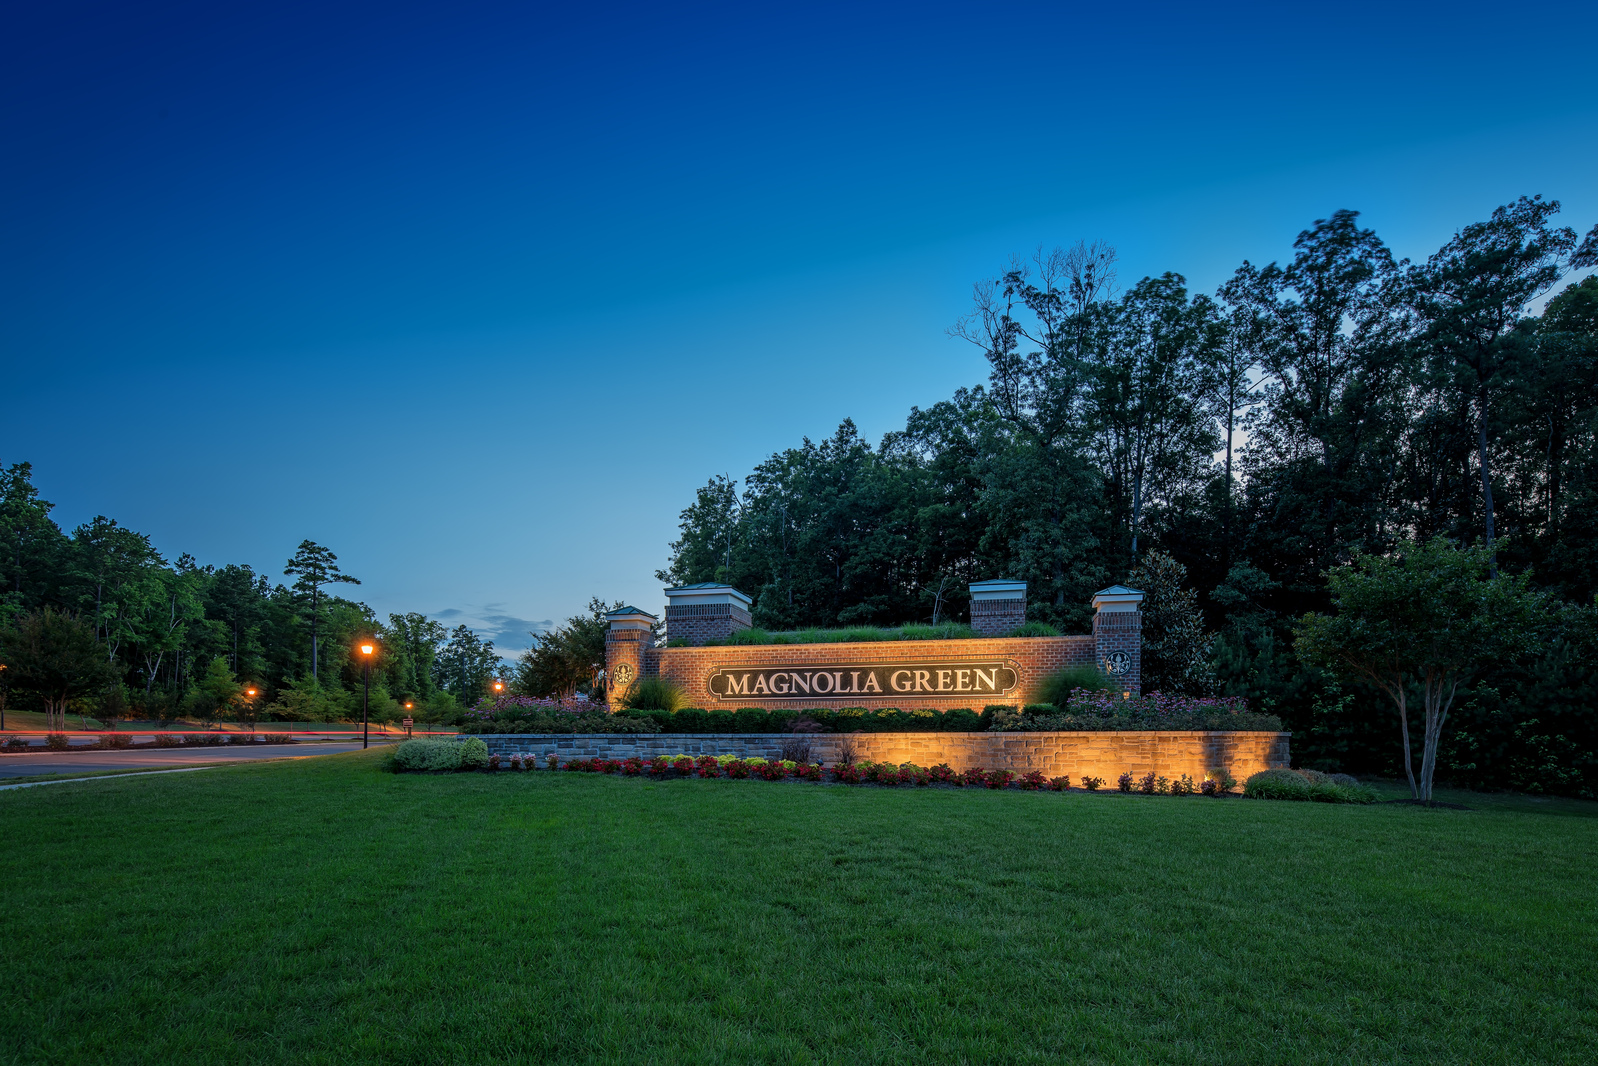 Get ready to fill your social calendar with golf tournaments, summer festivals, pool parties, movie nights, marathon runs & more! It's the Magnolia Green way of life!